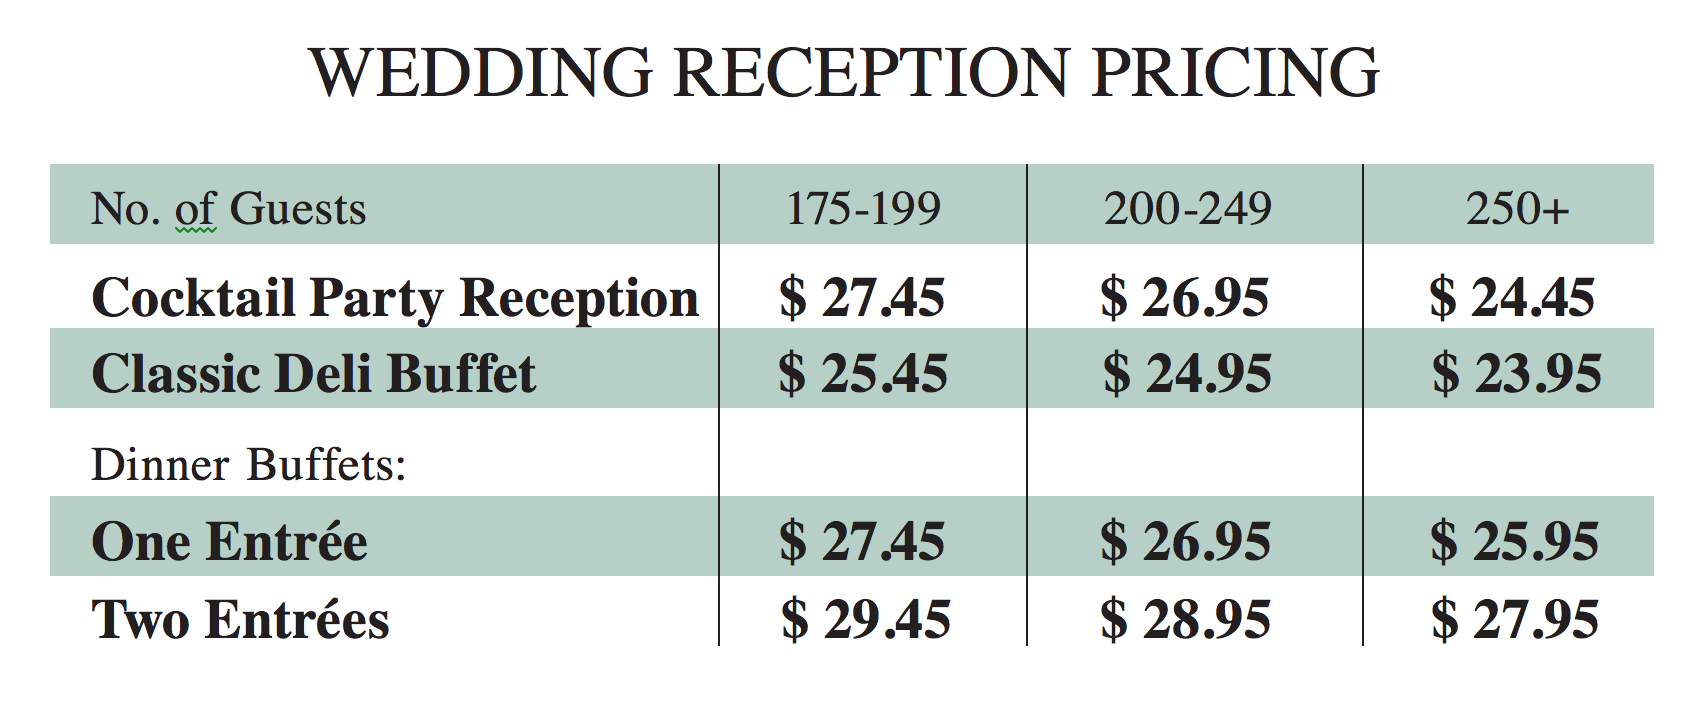 Wedding Reception Pricing - Saturday Only